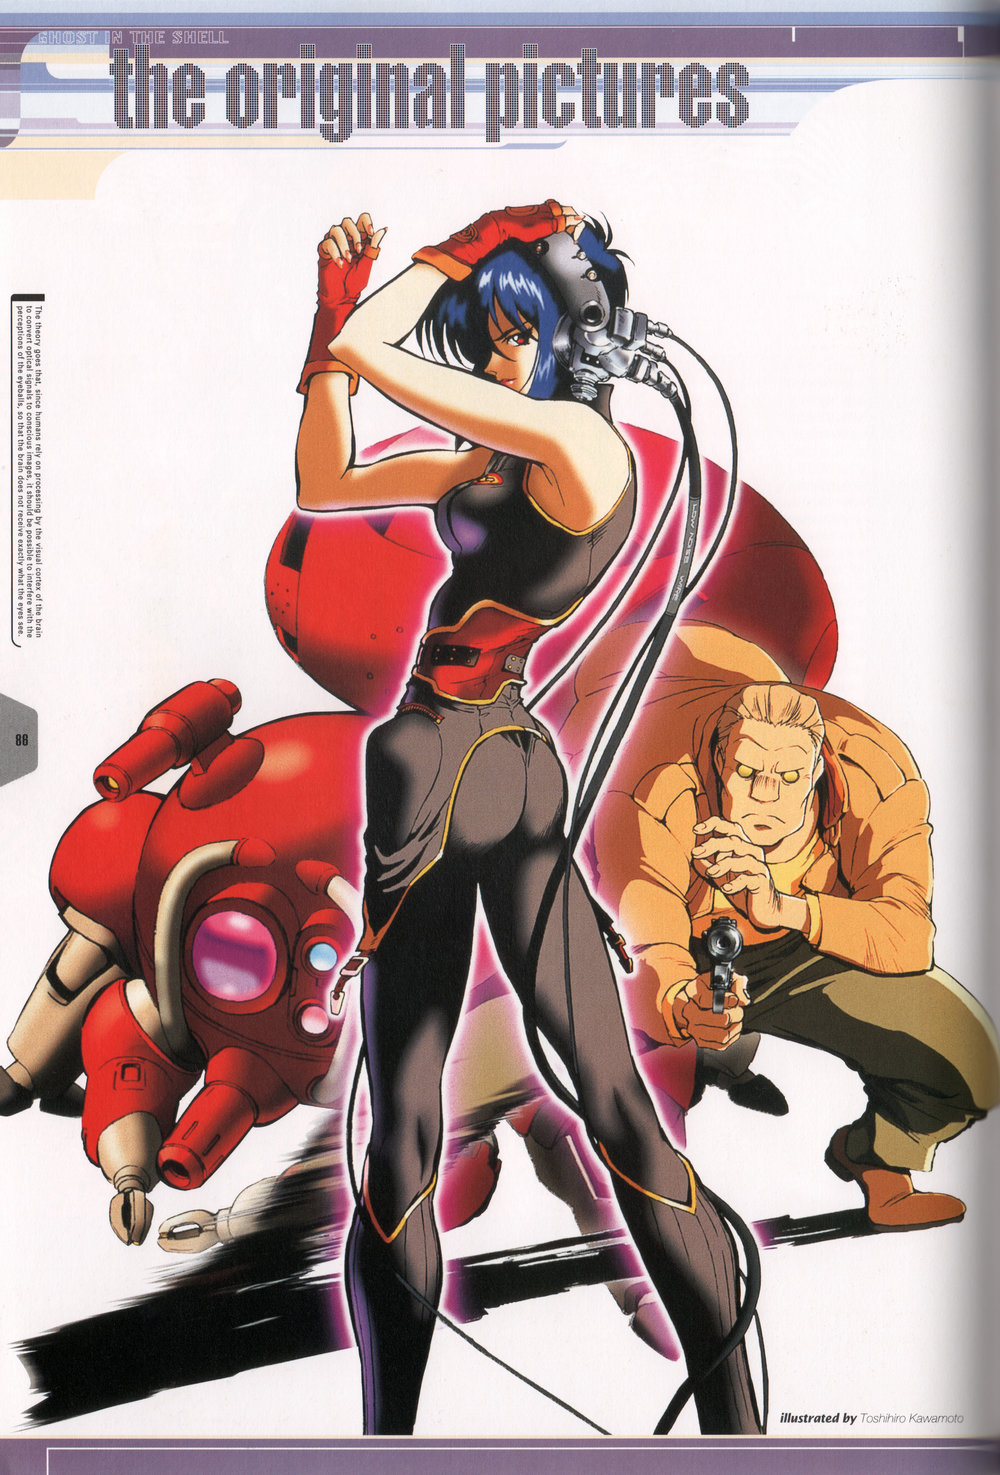 The official art book created in conjunction with the game. Two guidebooks were also published.